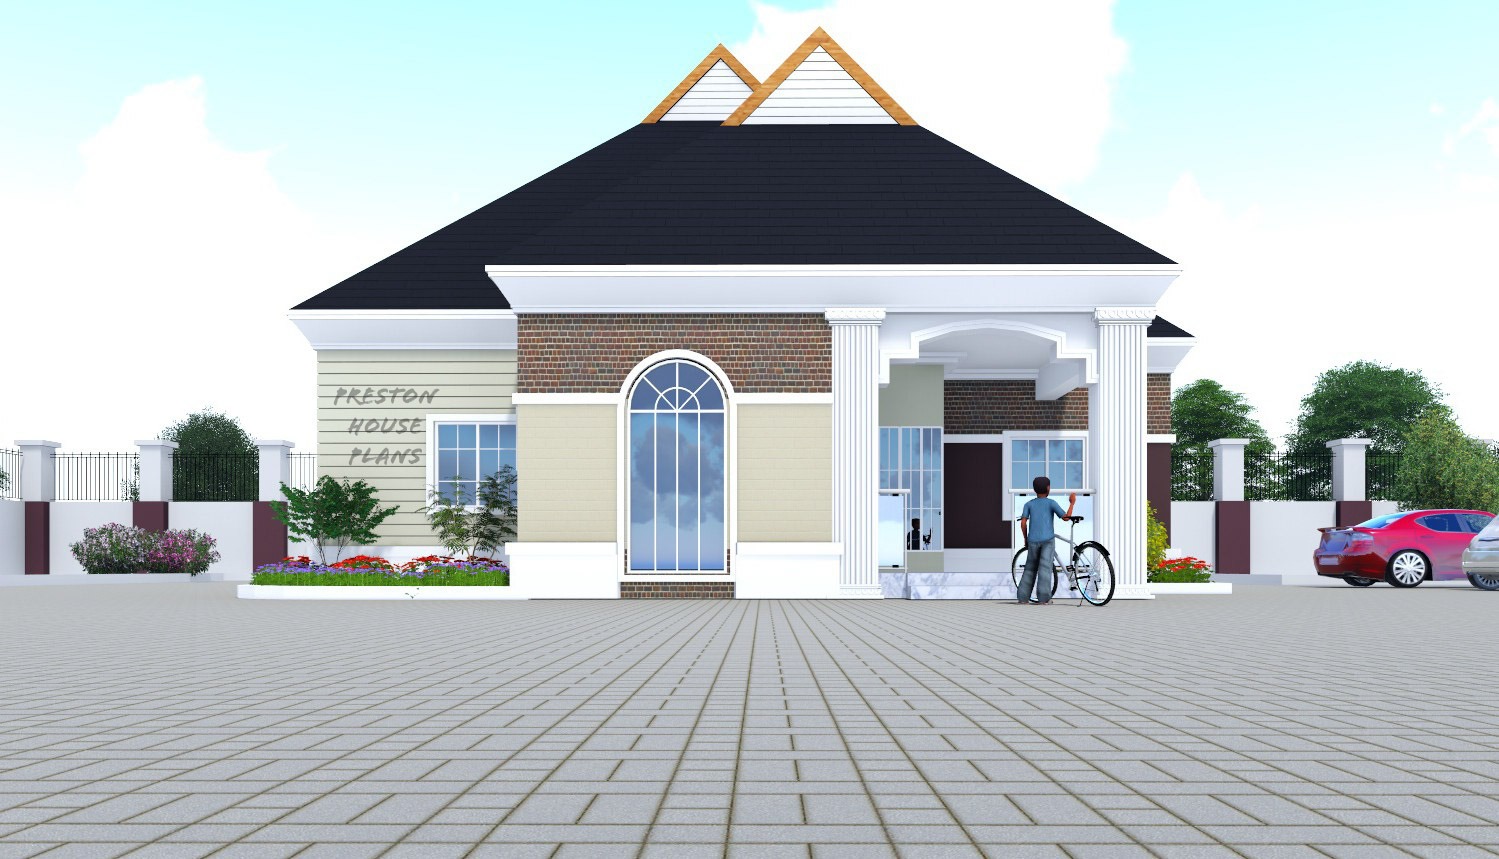 Four bedroom bungalow front view